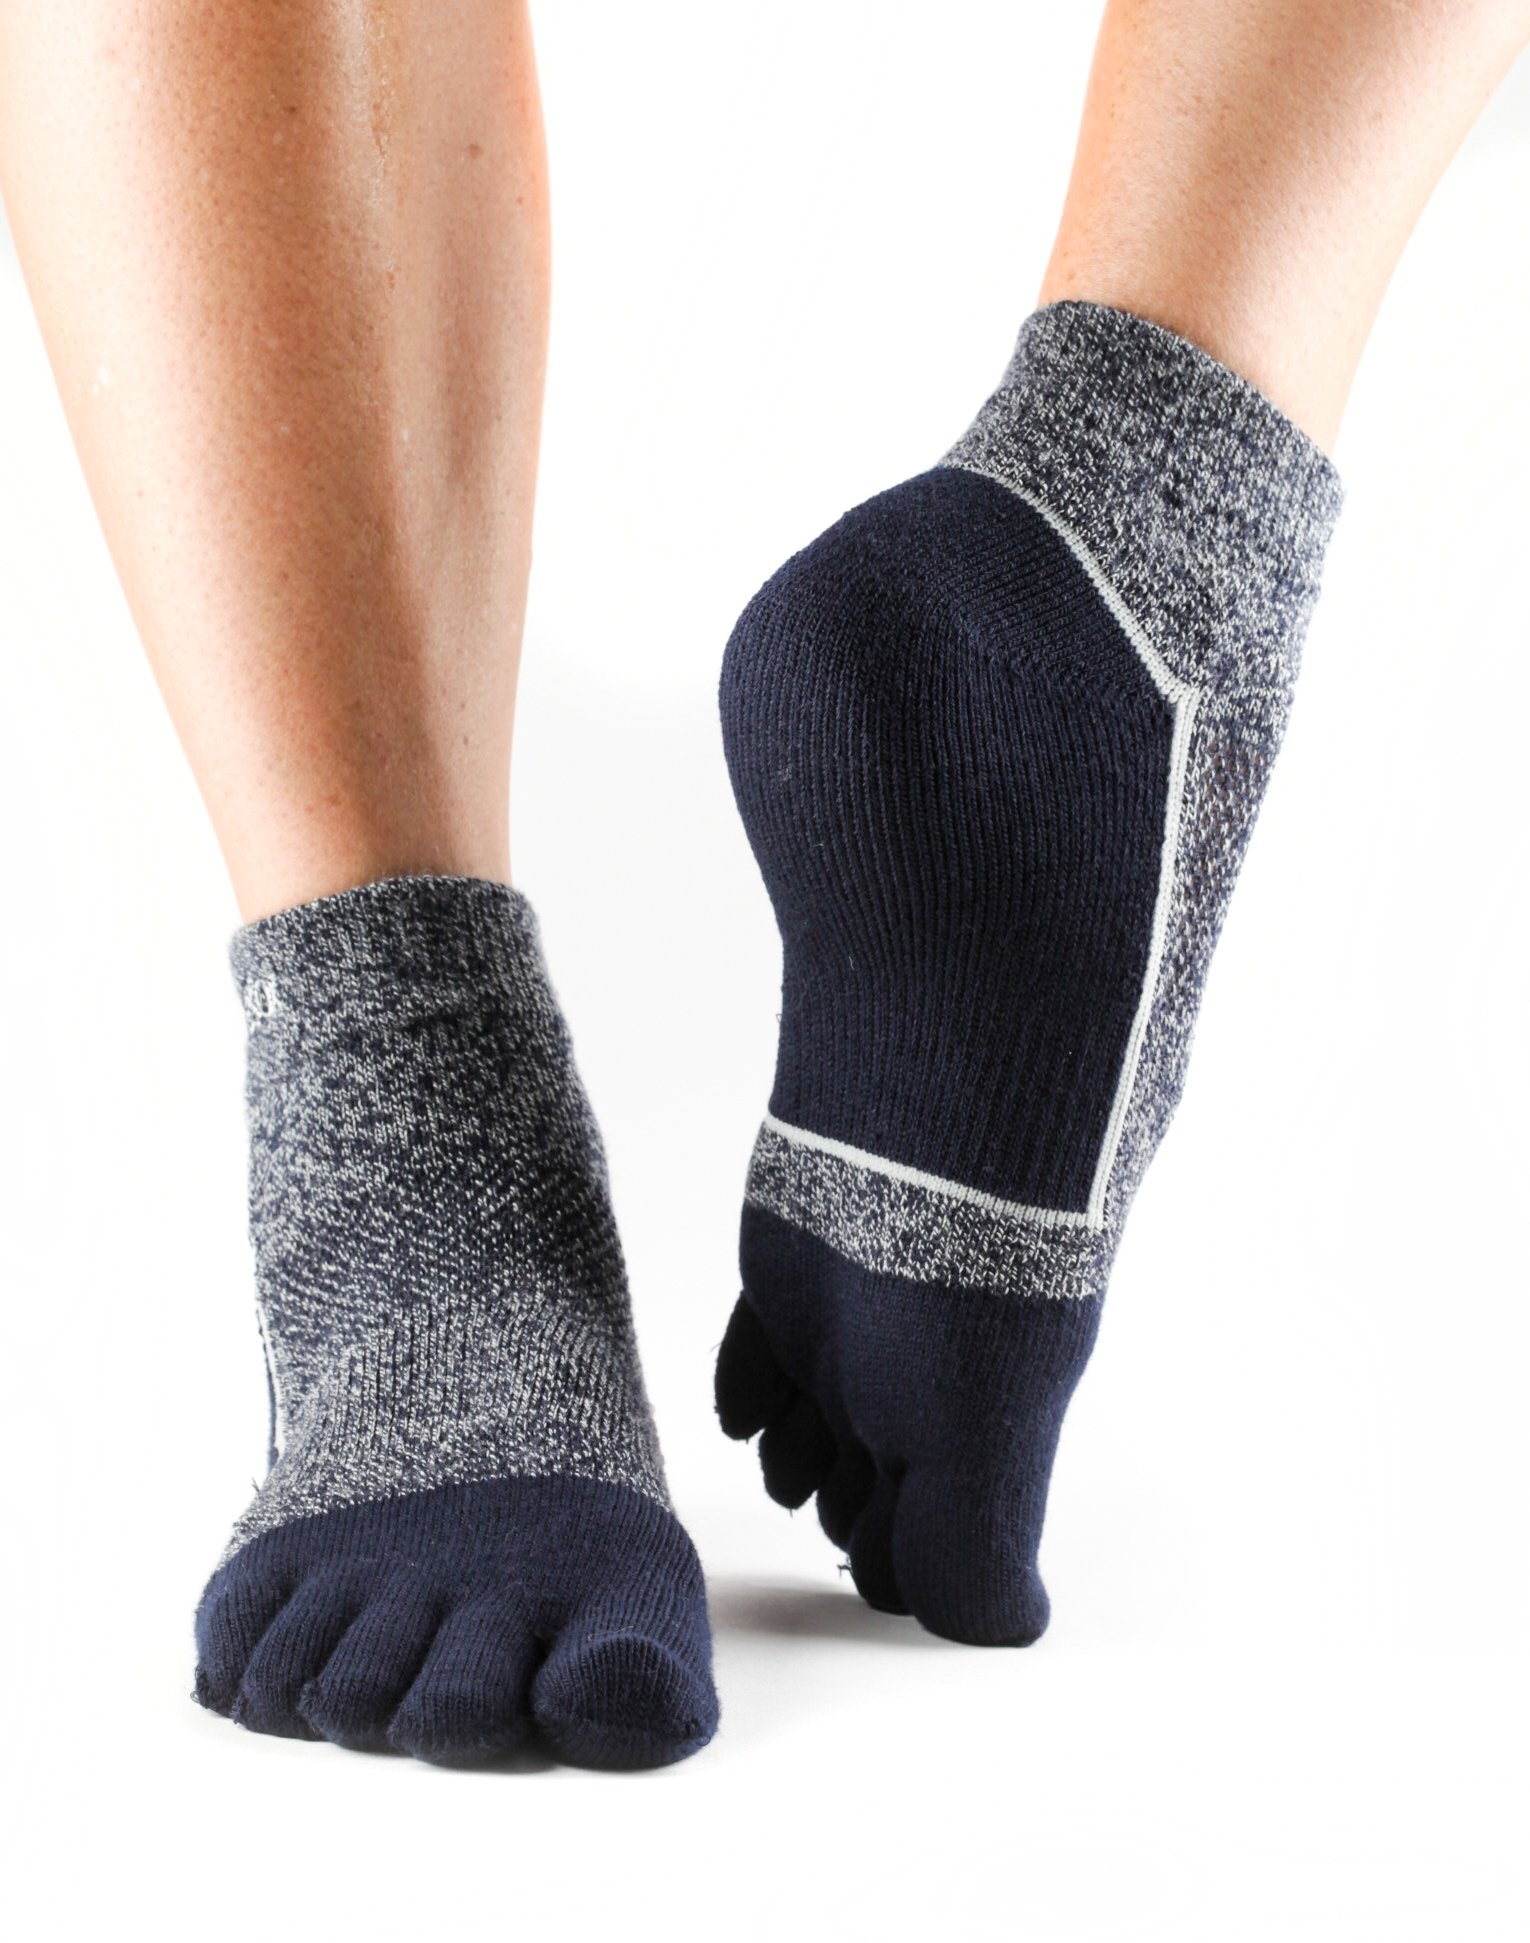 ToeSox UltraSport Performance Medium Weight Ankle Toe Socks (Navy Blue) Medium by toesox (Image #1)